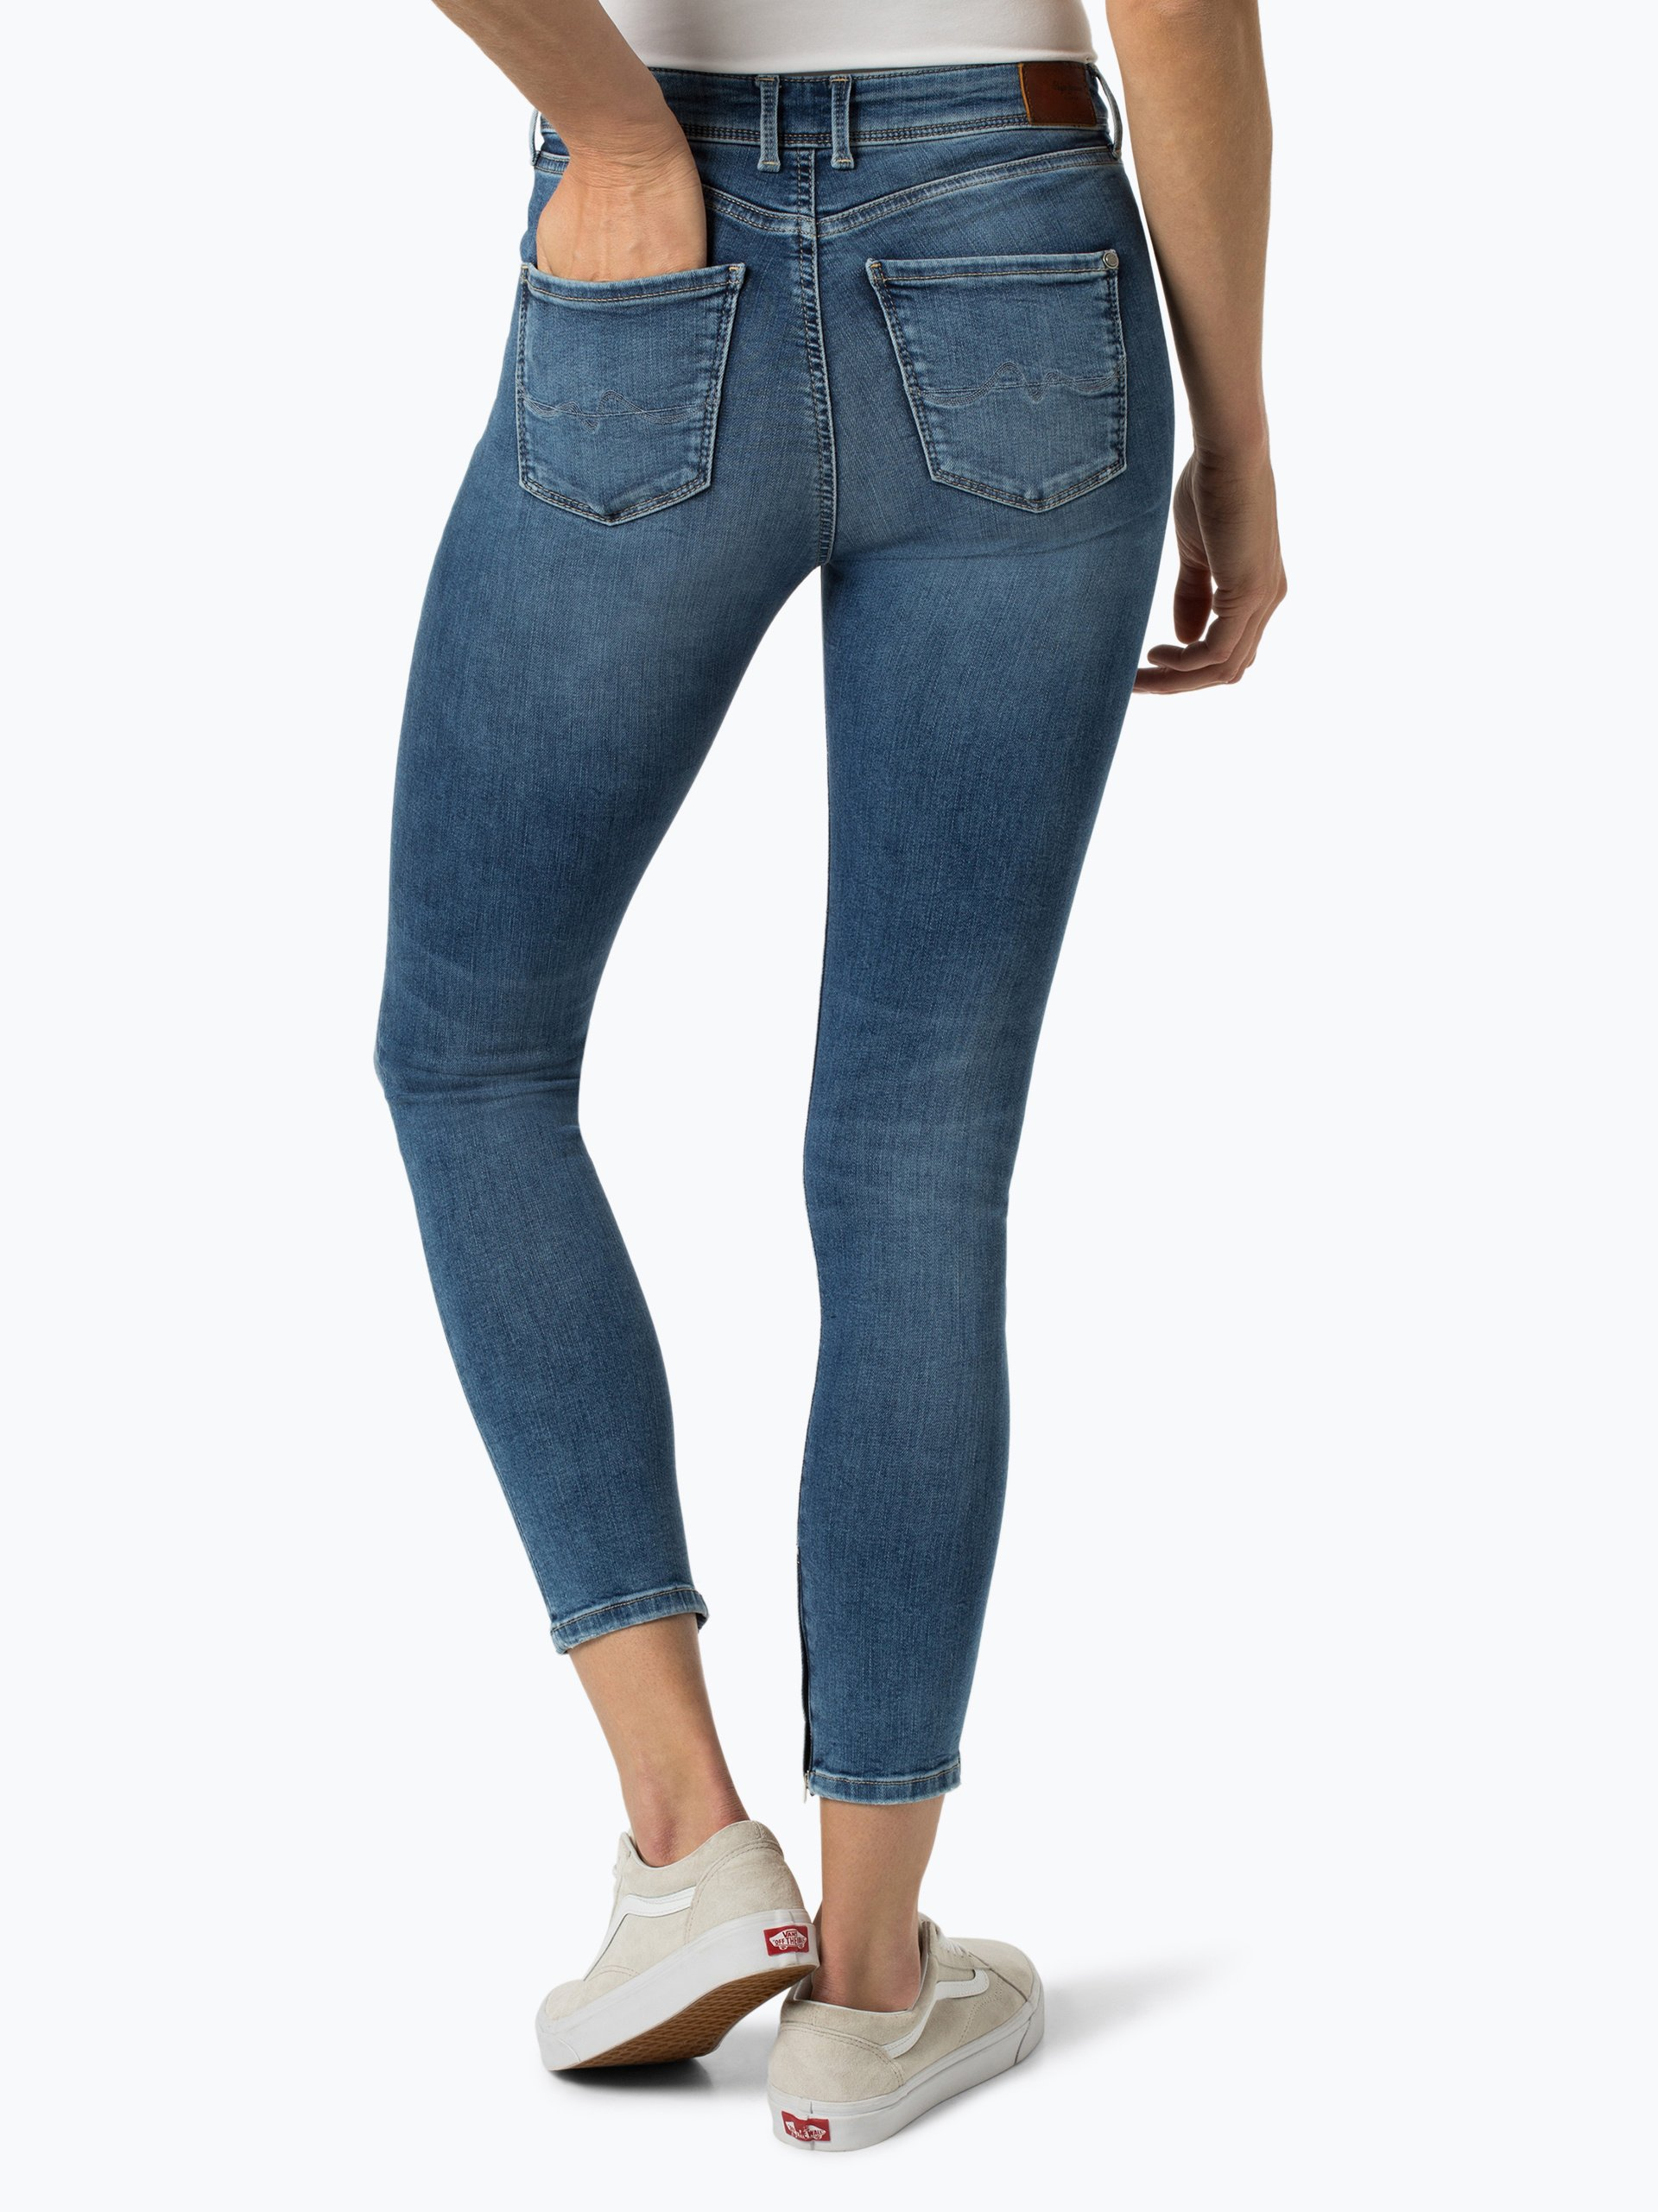 Pepe Jeans Damen Jeans - Cher High